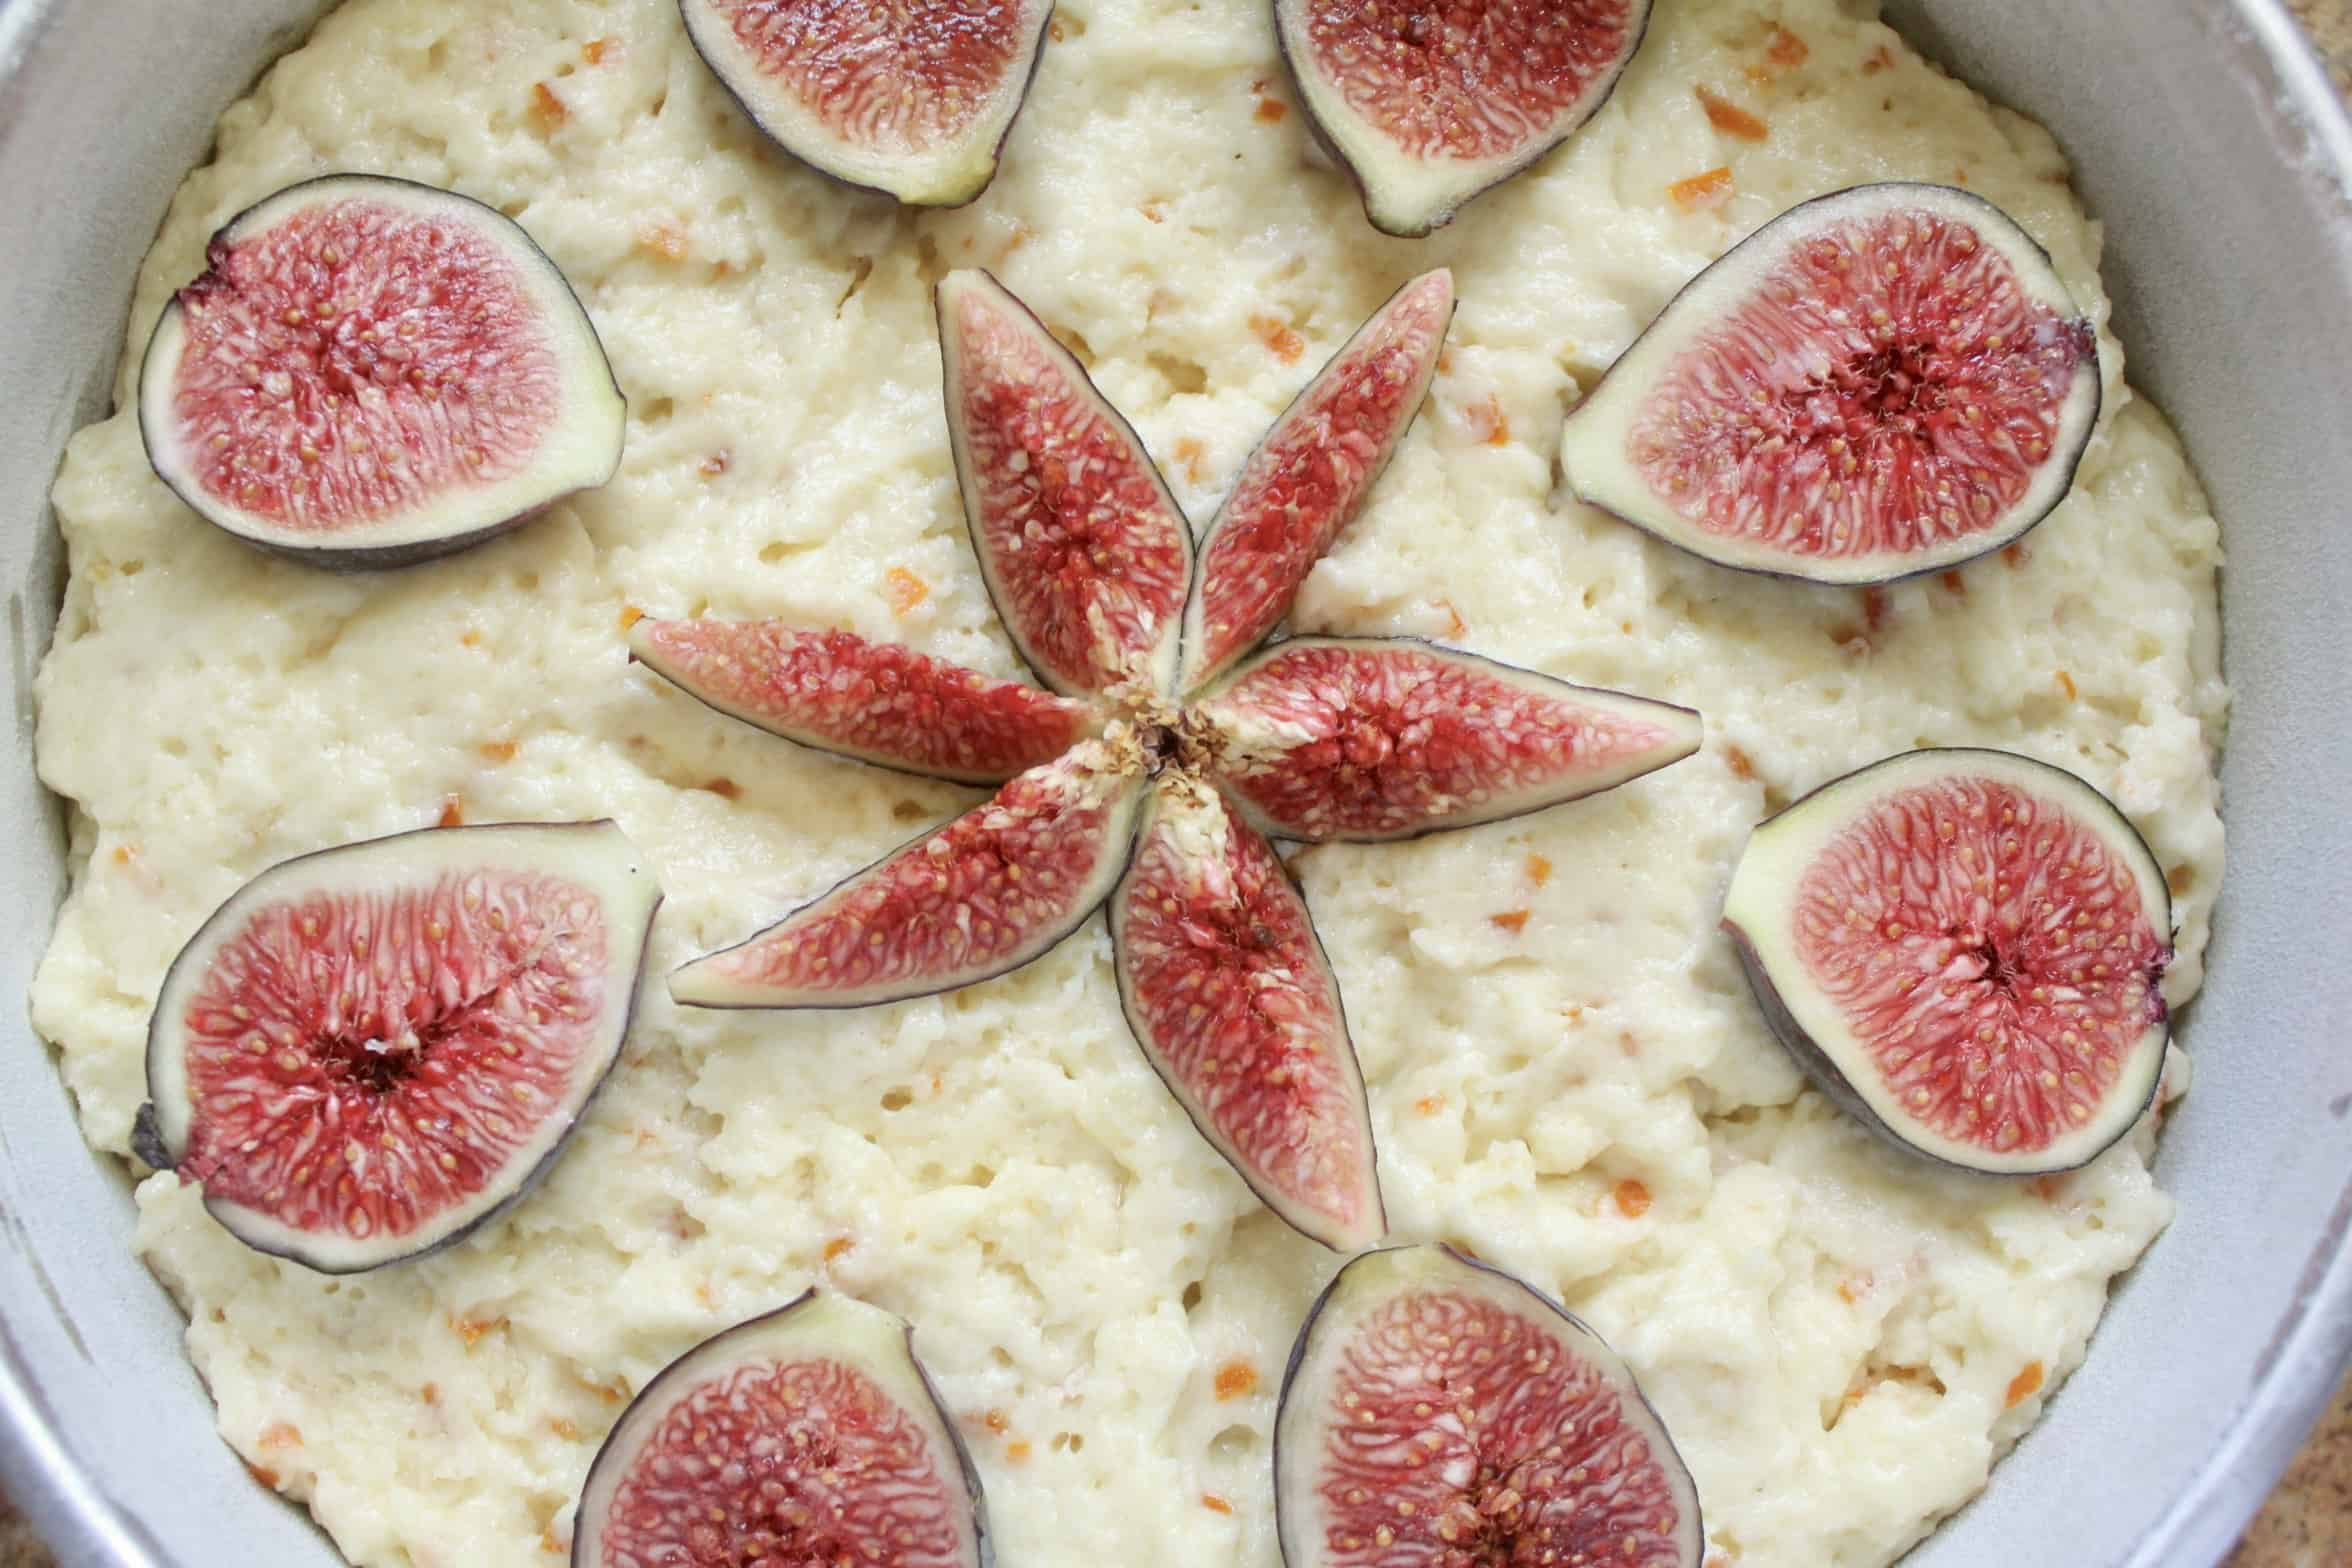 fresh figs decorating cake ready for the oven